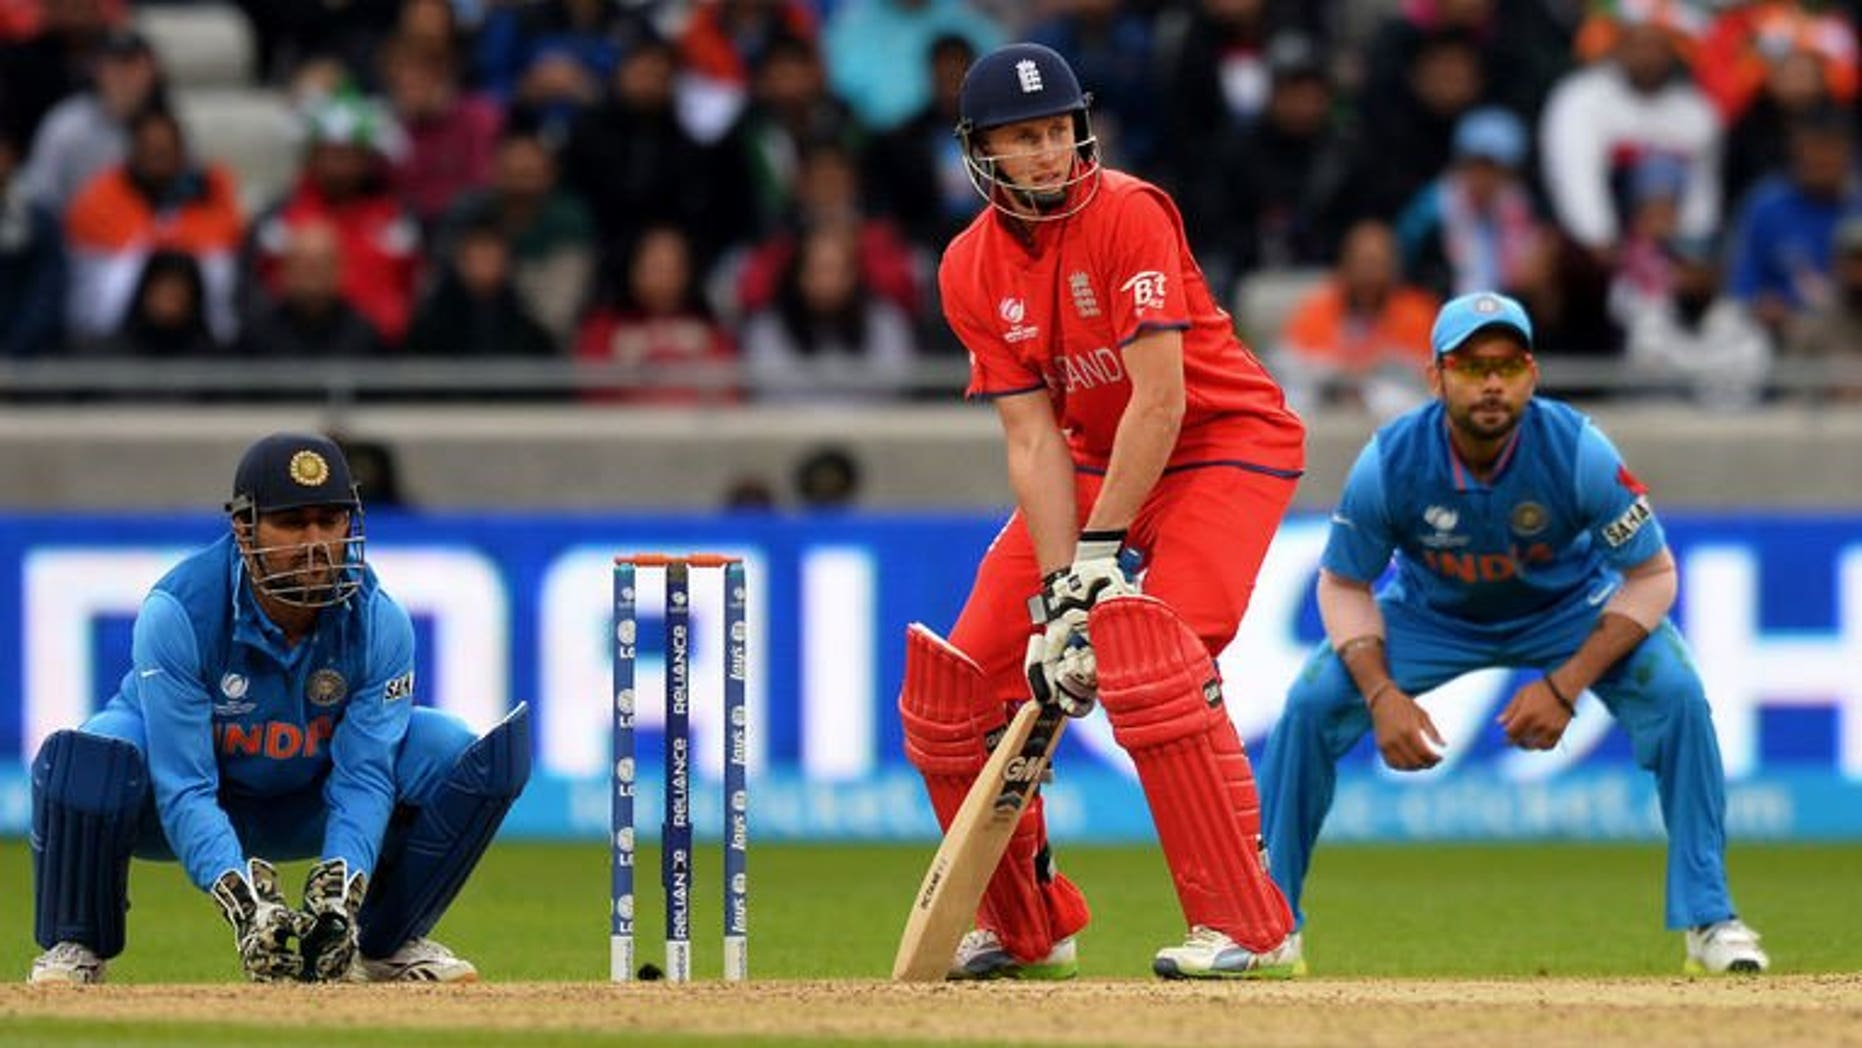 """England's Joe Root plays a shot as Indian Captain Mahendra Singh Dhoni (L) and India's Virat Kohli looks on during the 2013 ICC Champions Trophy Final cricket match between England and India at Edgbaston in Birmingham, central England on June 23, 2013. England said Monday rising star Root was """"currently the best opening partner for Alastair Cook"""" as they left Nick Compton out of their squad."""